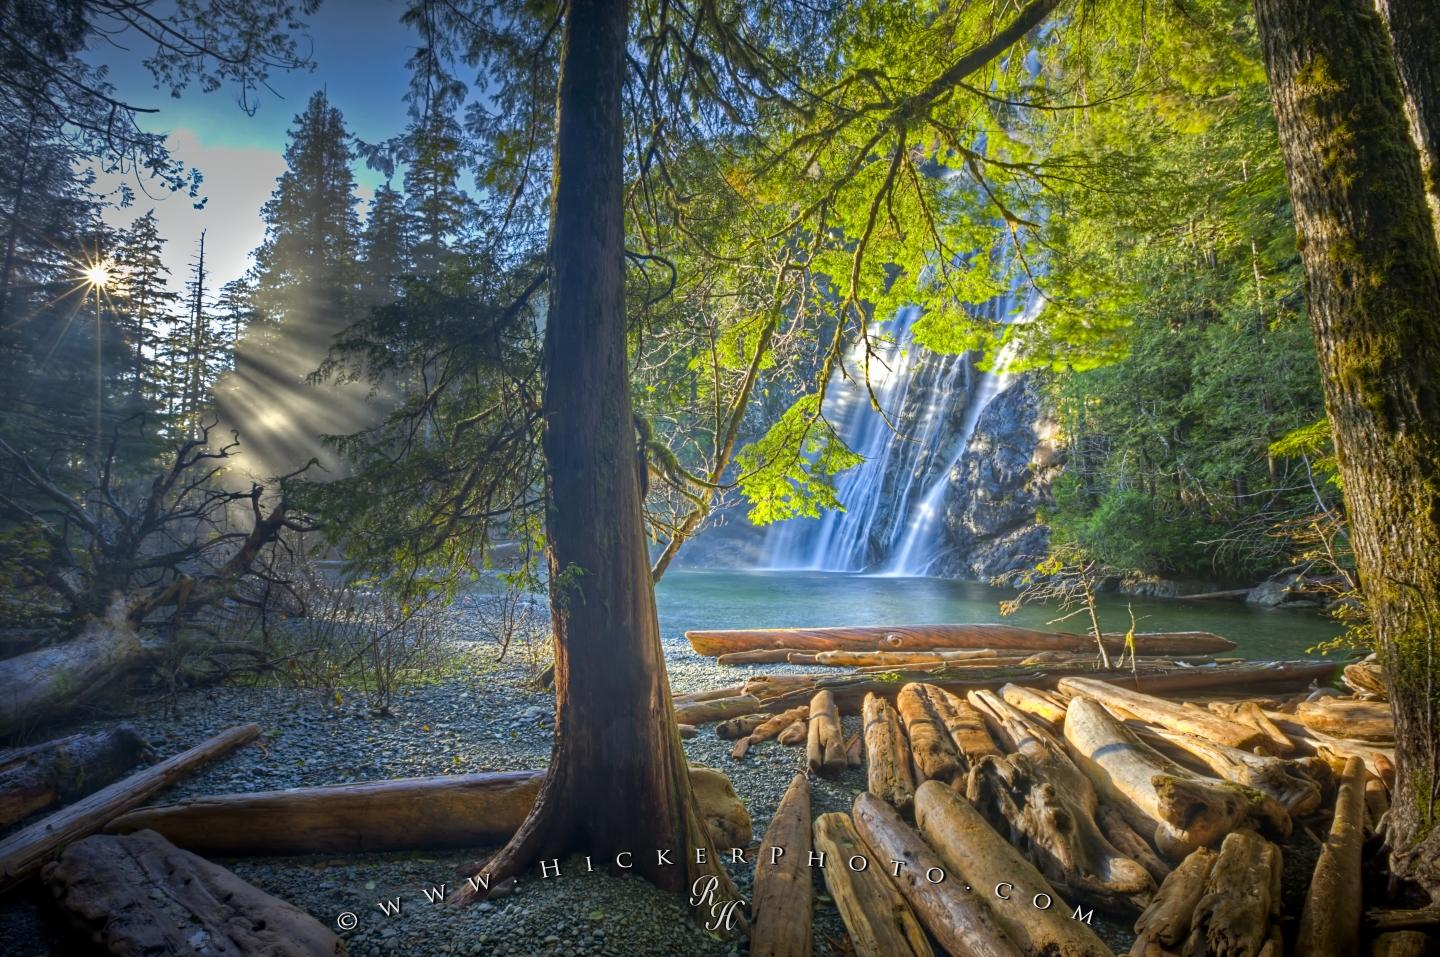 Fall Morning Sun Wallpaper Free Wallpaper Background Surreal Waterfall Scenic